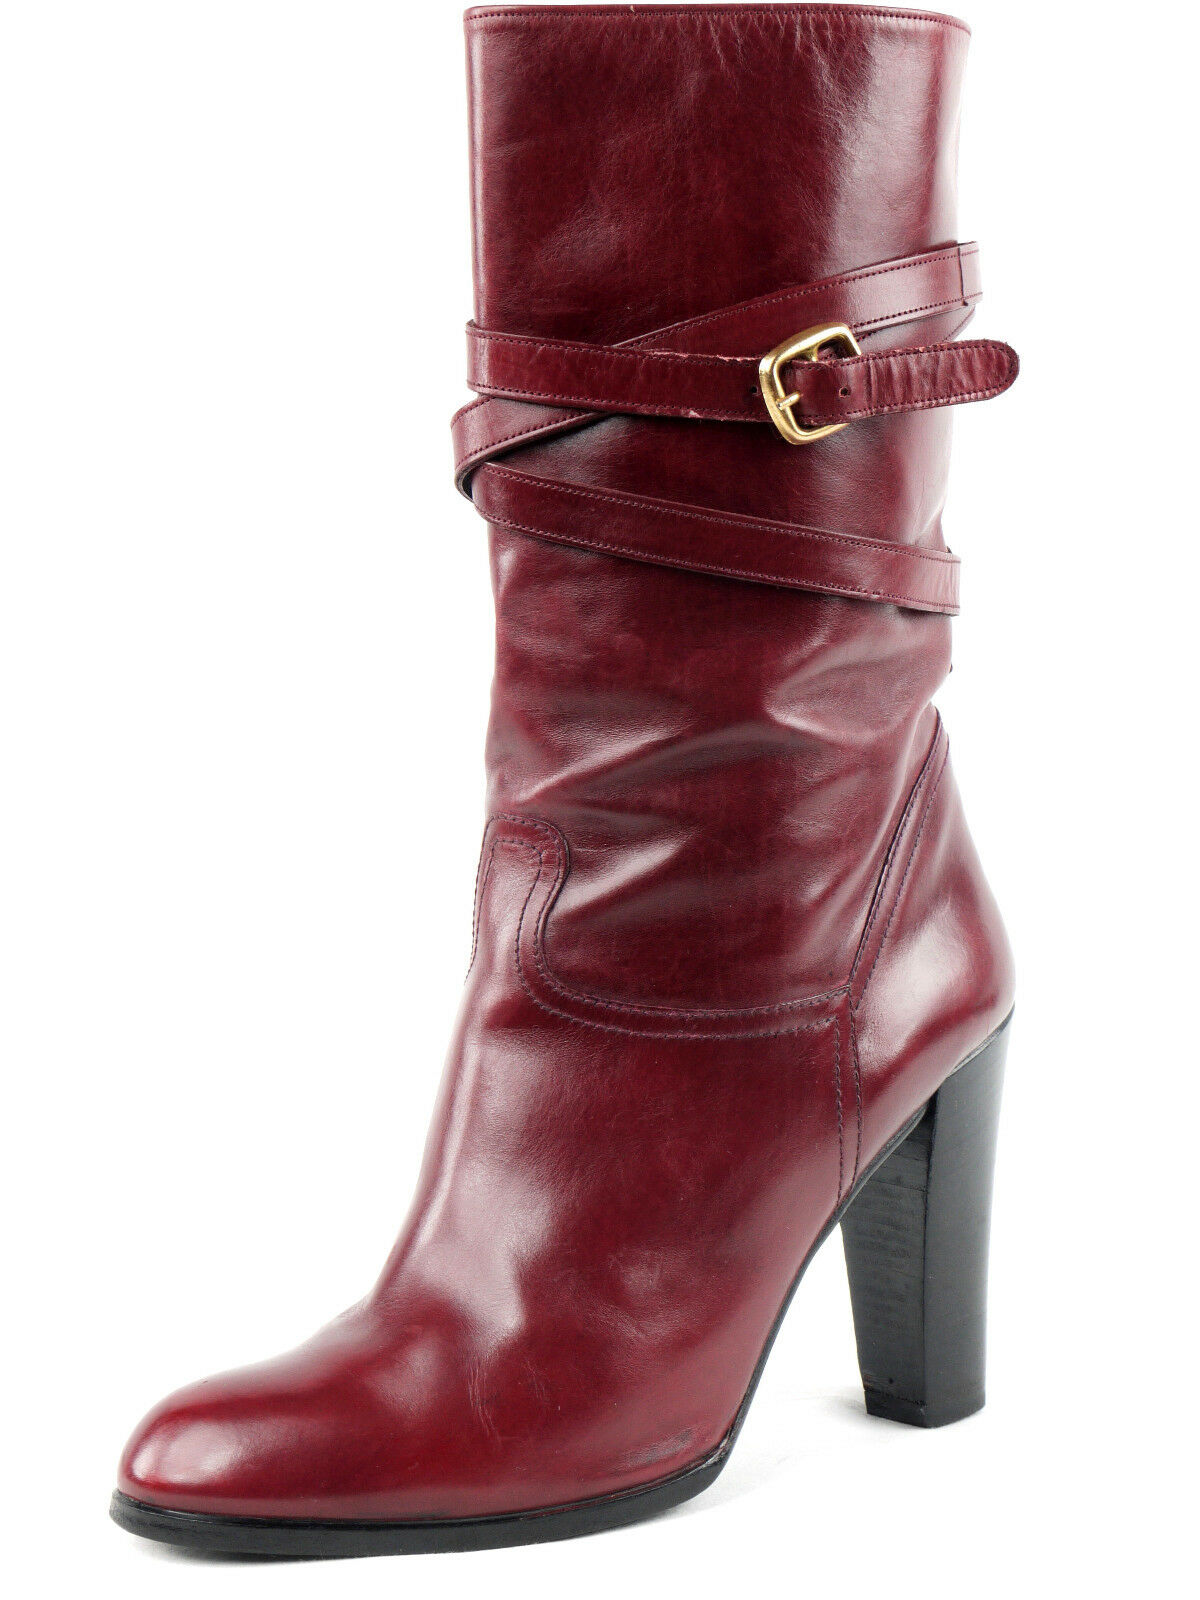 CHRISTIAN DIOR Deep Red Half Calf Leather Boots 6.5 B FRANCE